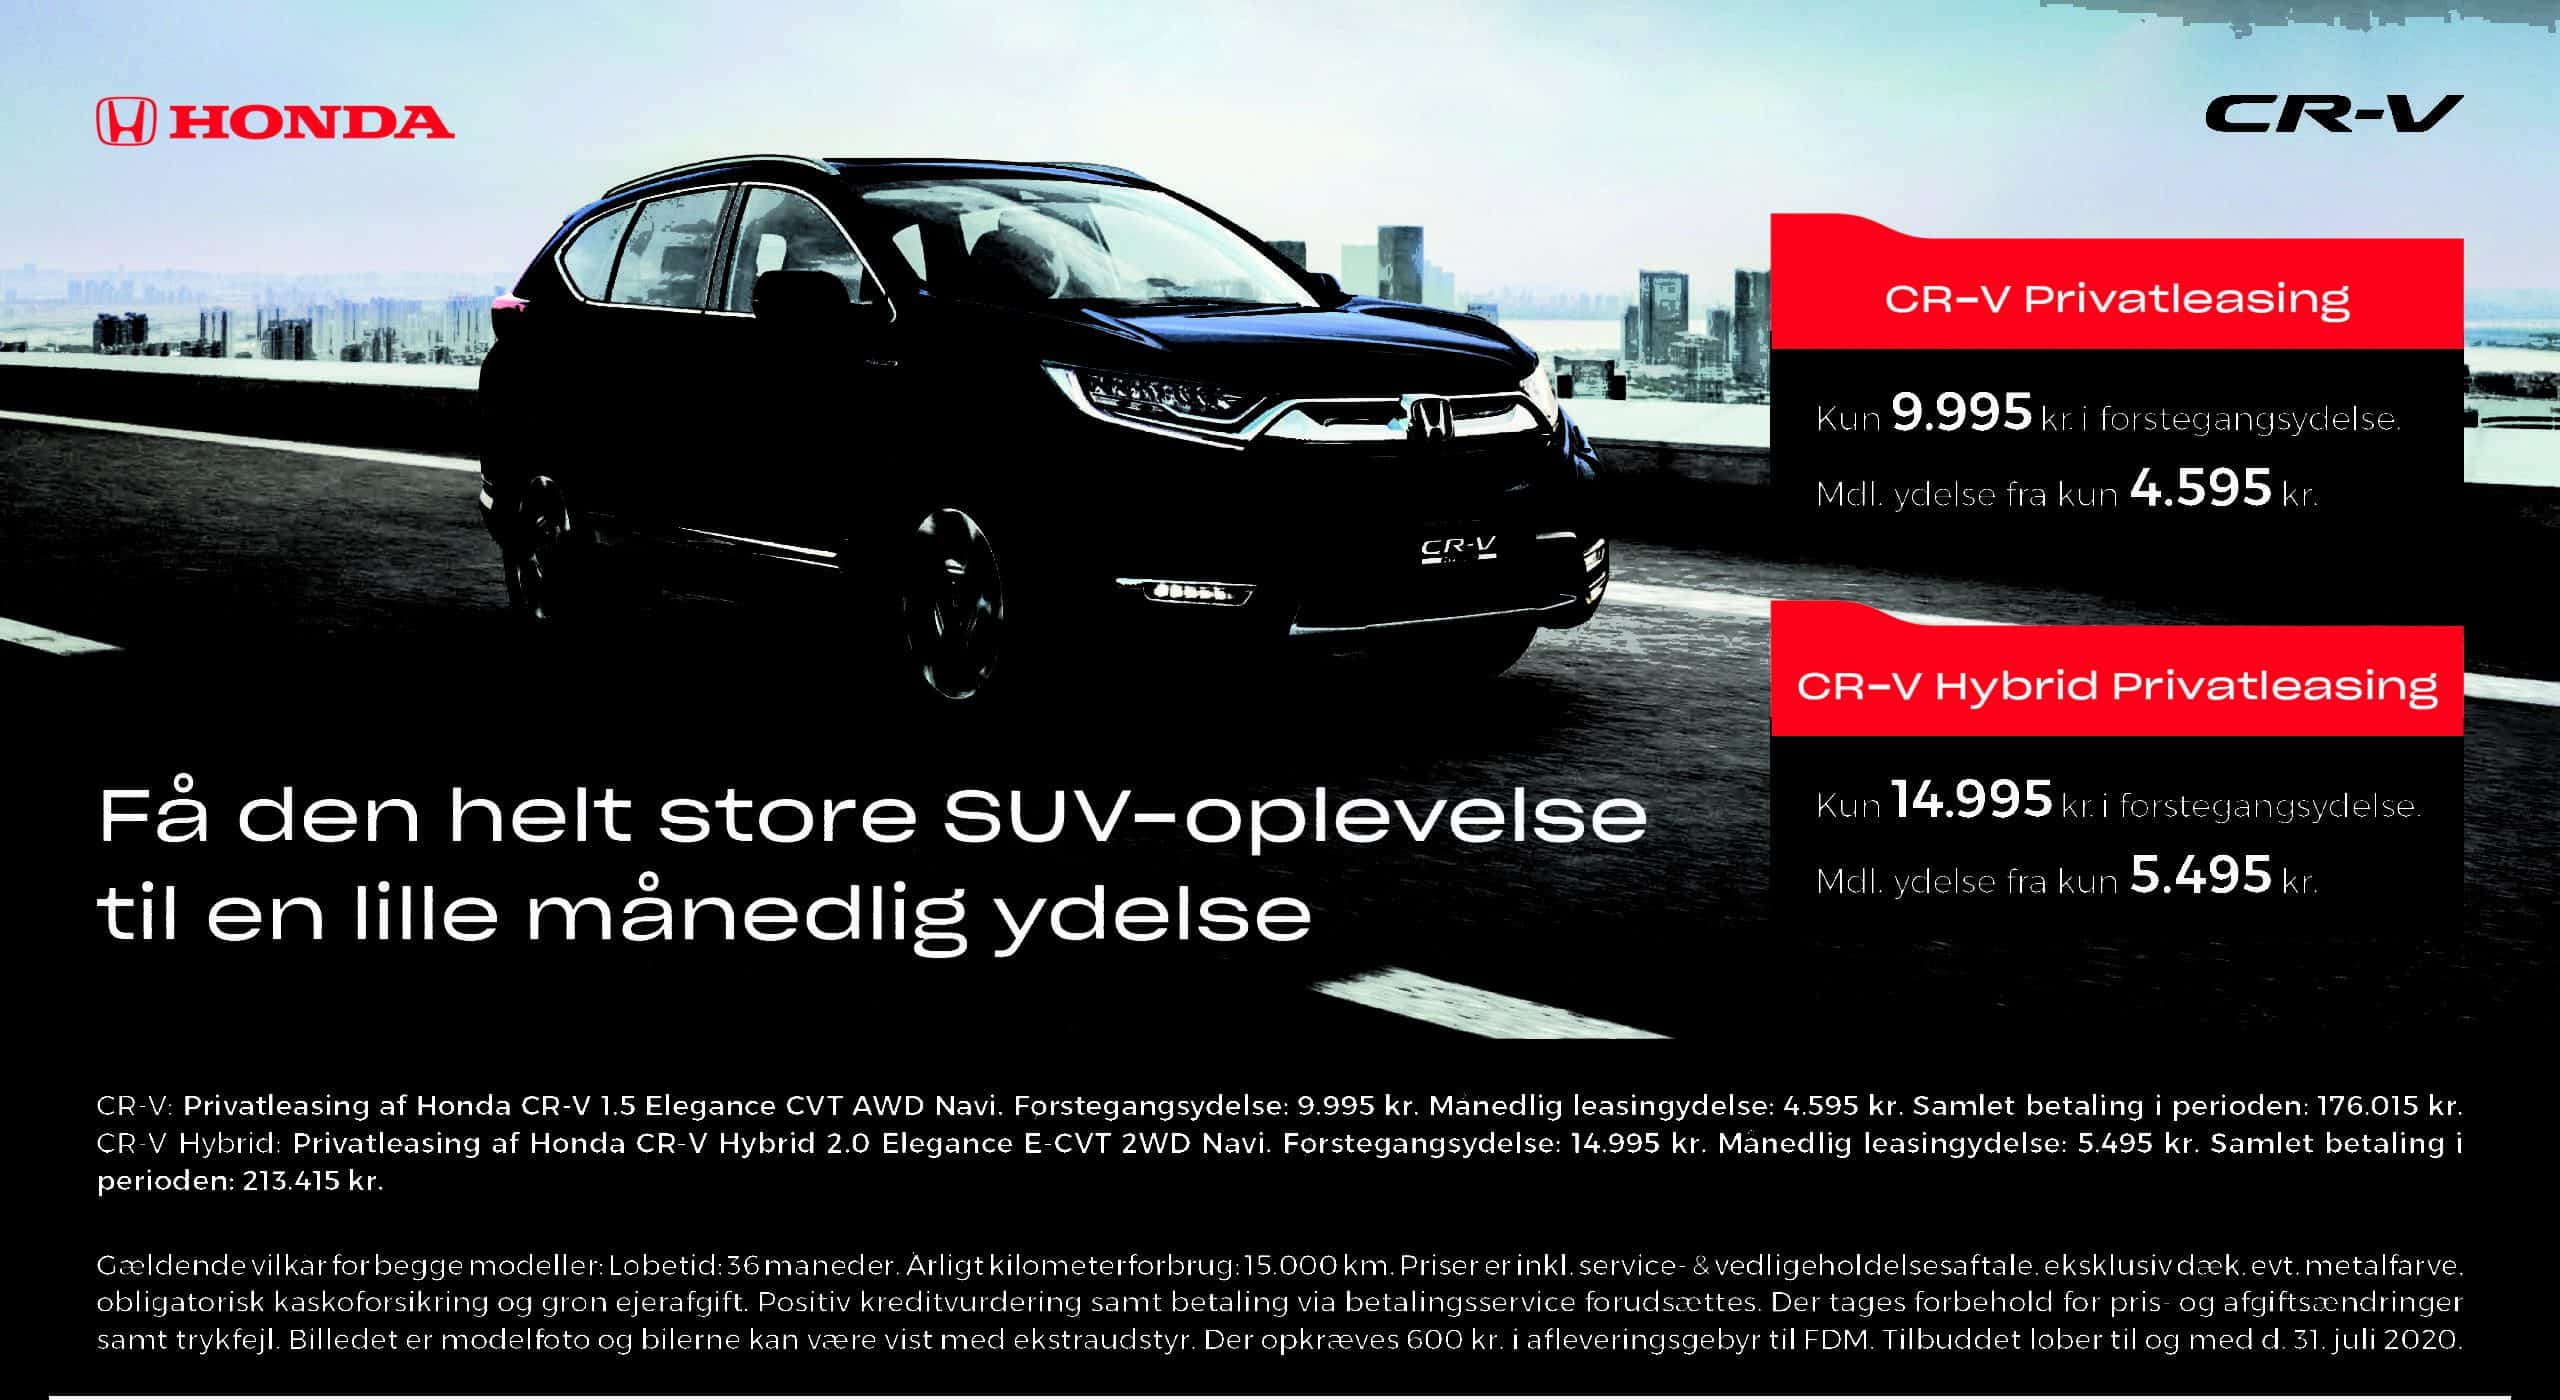 CR-V – privatleasing